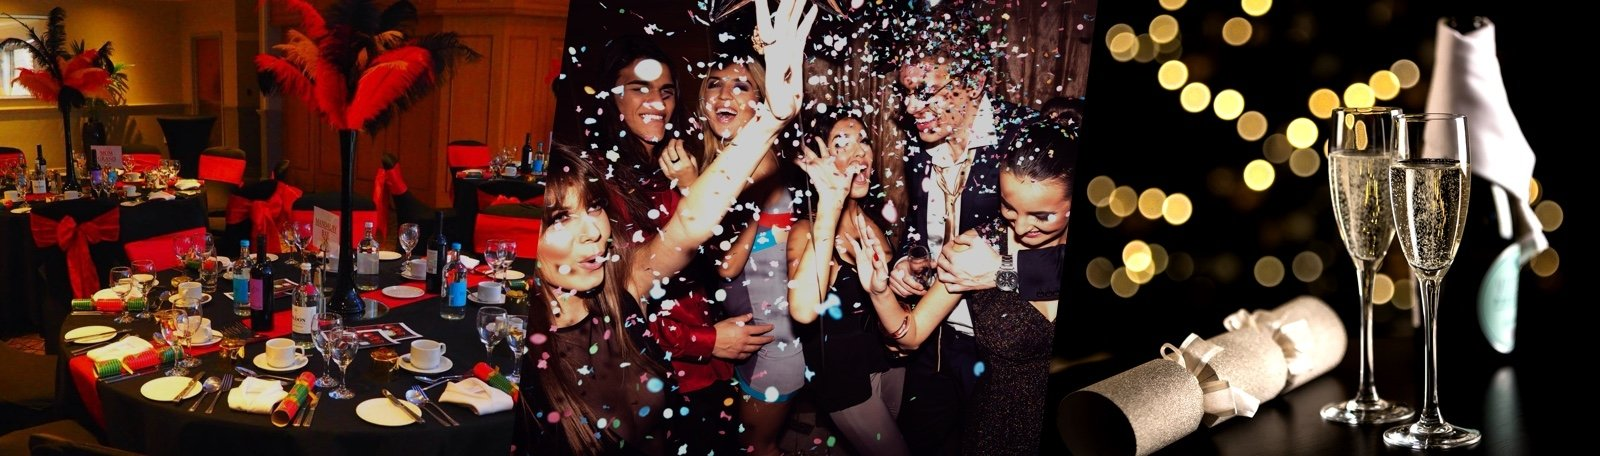 Don't miss these 5 places in Surrey where you can ring in the New Year